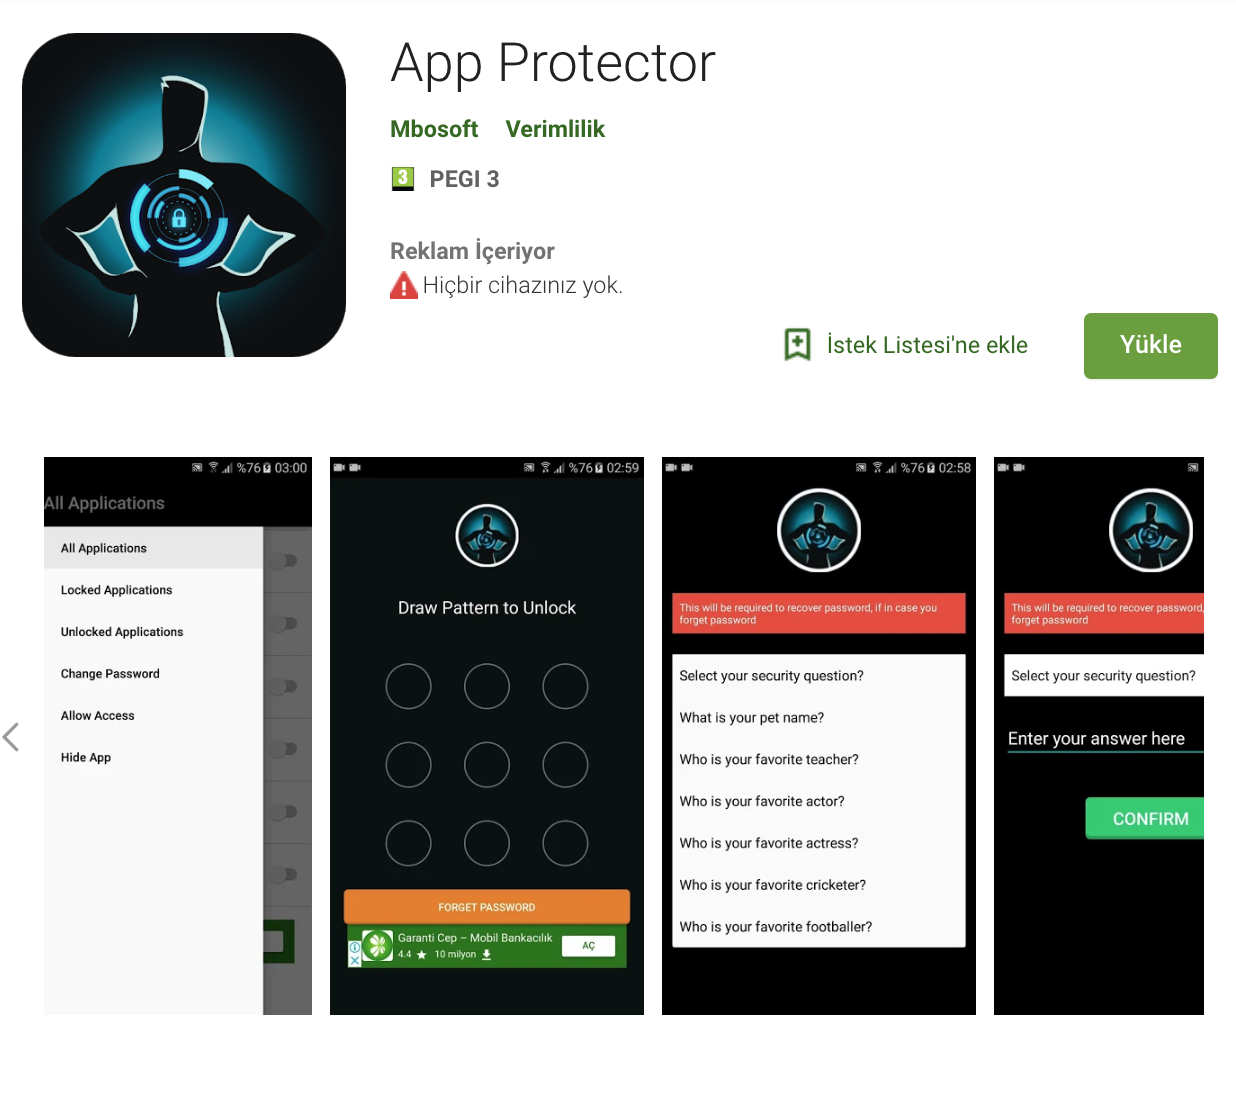 App Locker is a light app protector tool to protect your